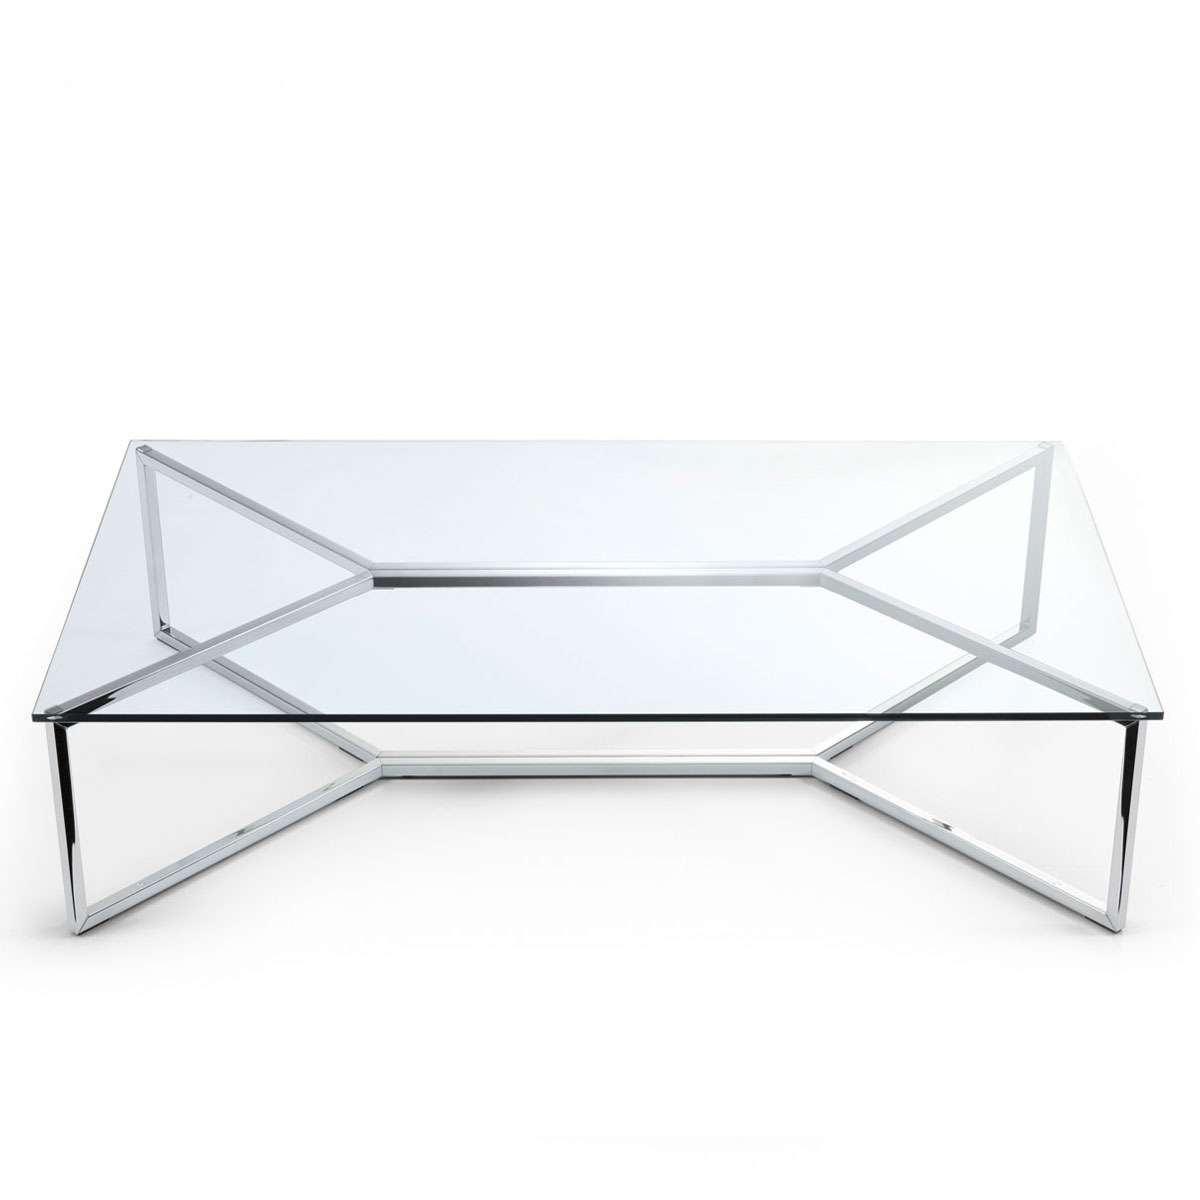 2017 Glass Steel Coffee Tables Intended For Irresistible Wood Voigt Home Collection Then Polished Glass Athlos (View 3 of 20)